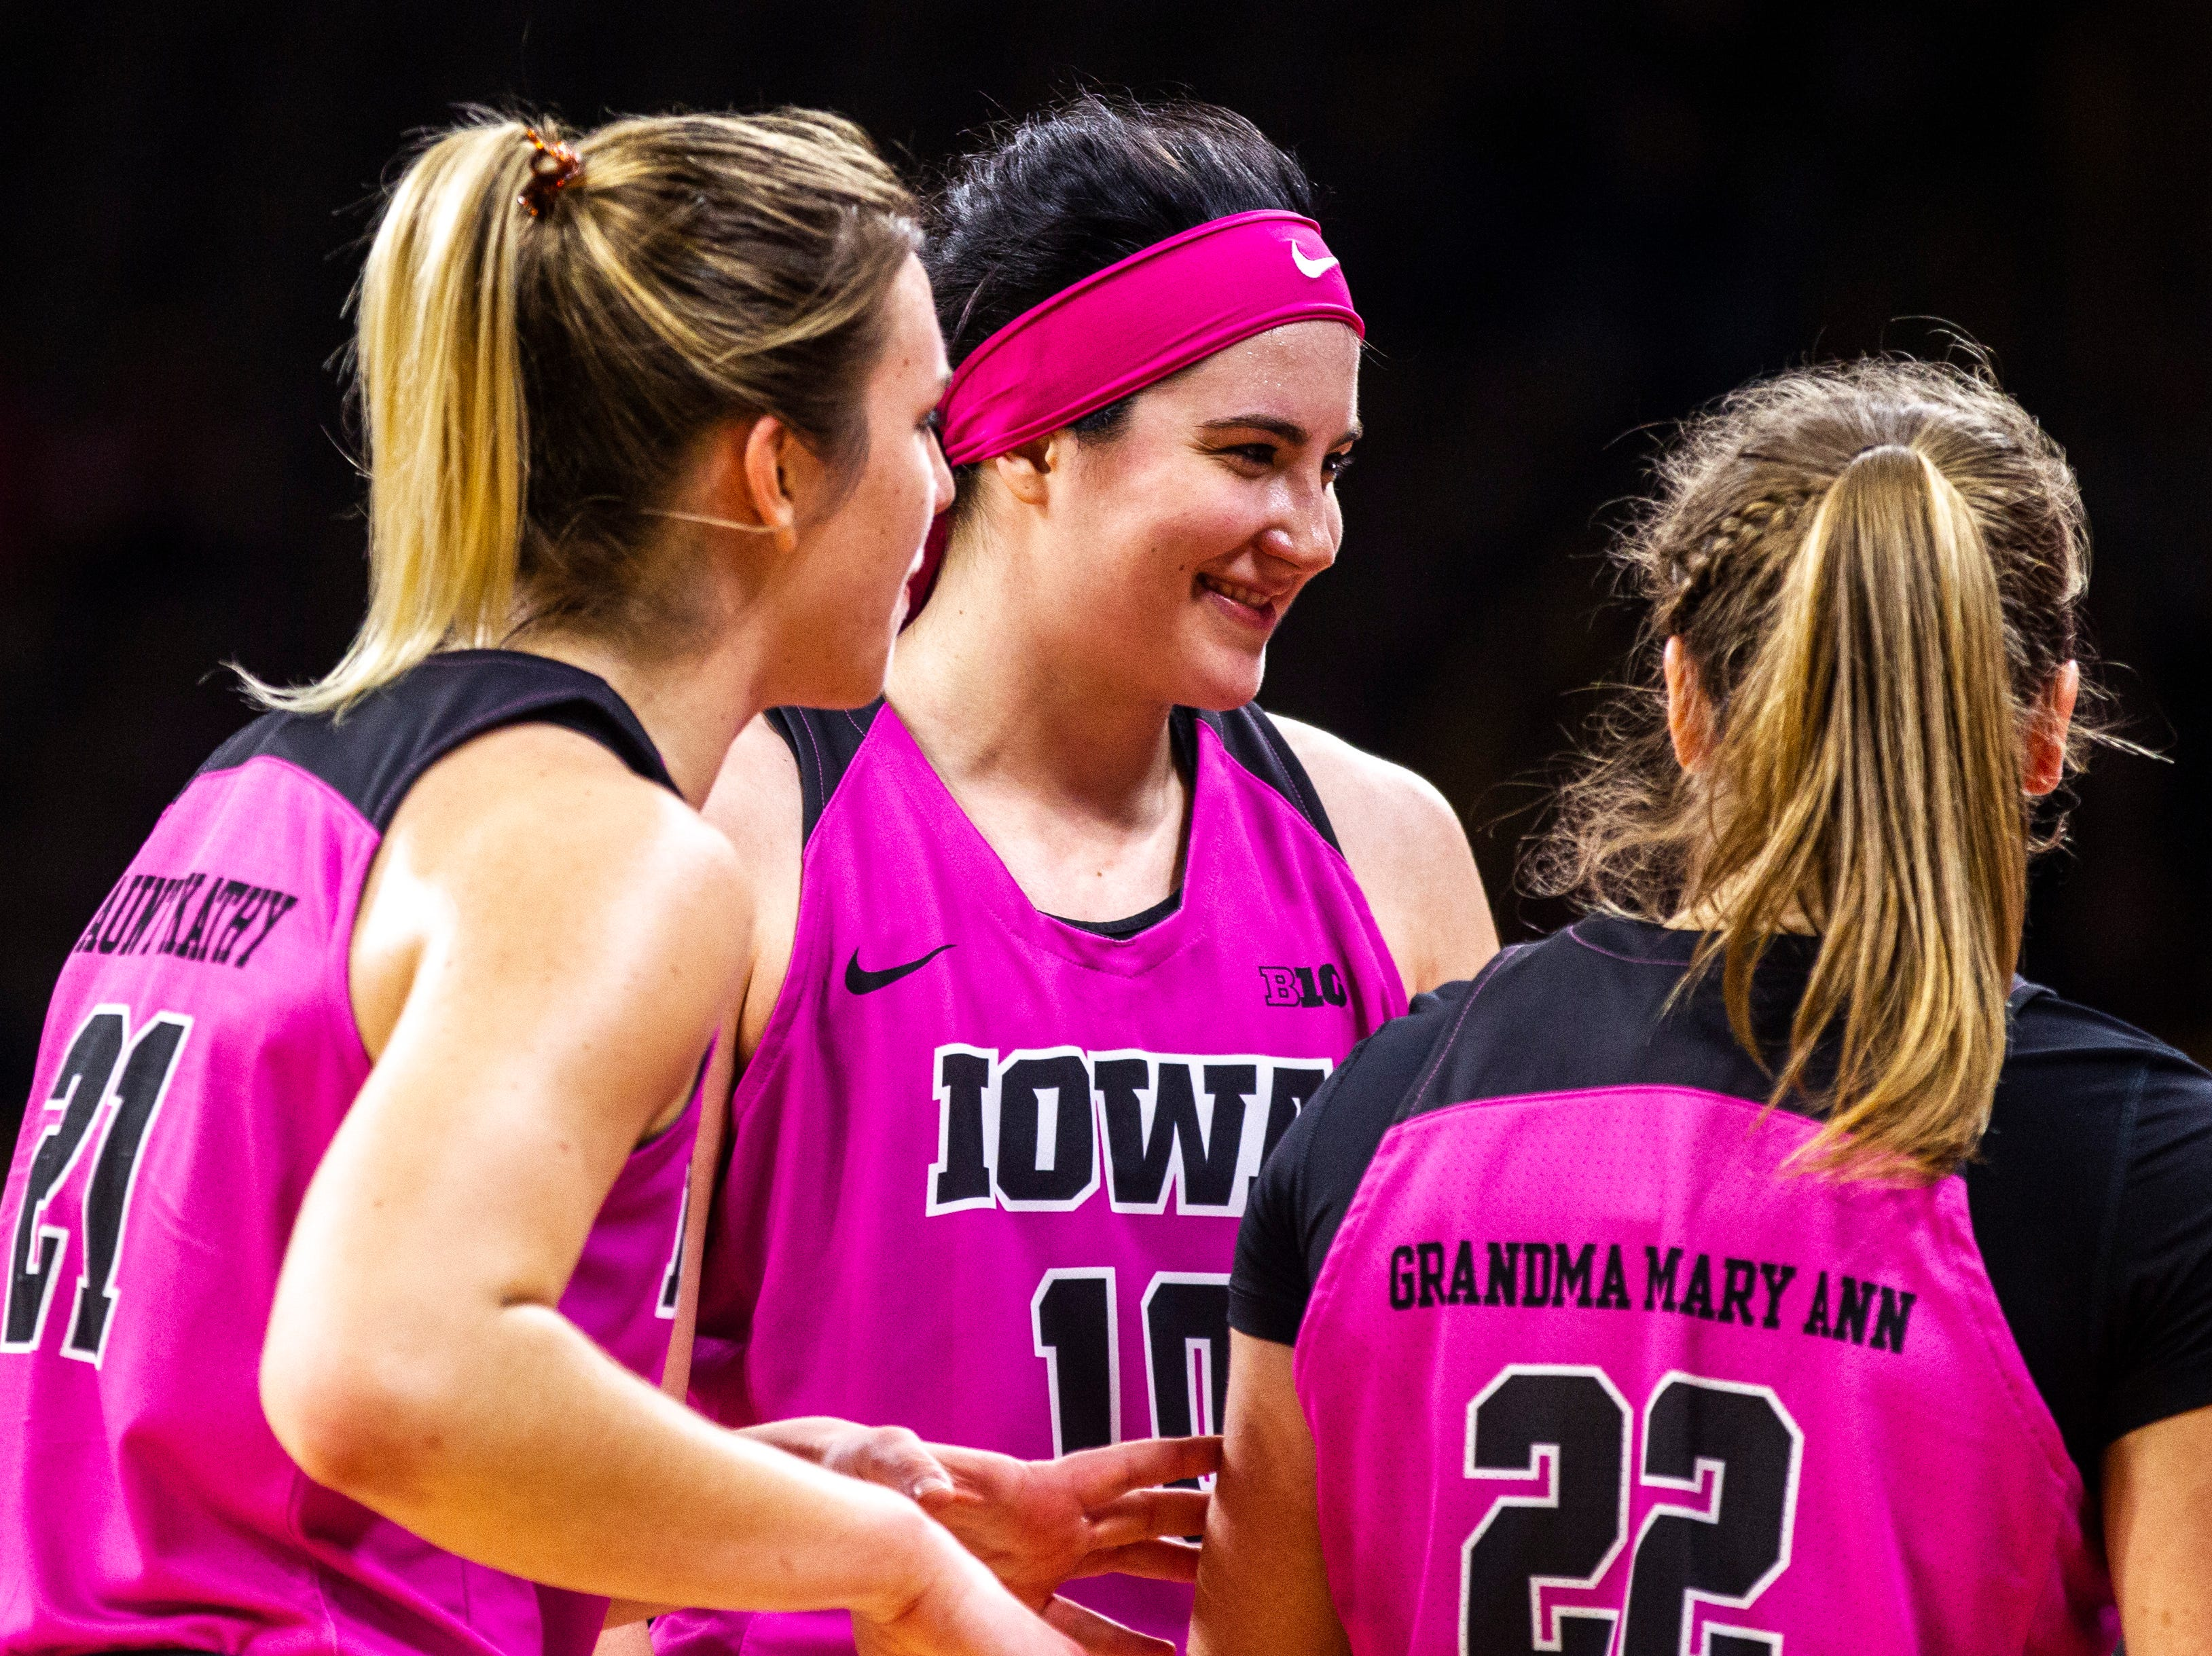 Iowa center Megan Gustafson (10) smiles while huddling with teammates Hannah Stewart (21) and Kathleen Doyle (22) during a NCAA Big Ten Conference women's basketball game on Sunday, Feb. 17, 2019 at Carver-Hawkeye Arena in Iowa City, Iowa.